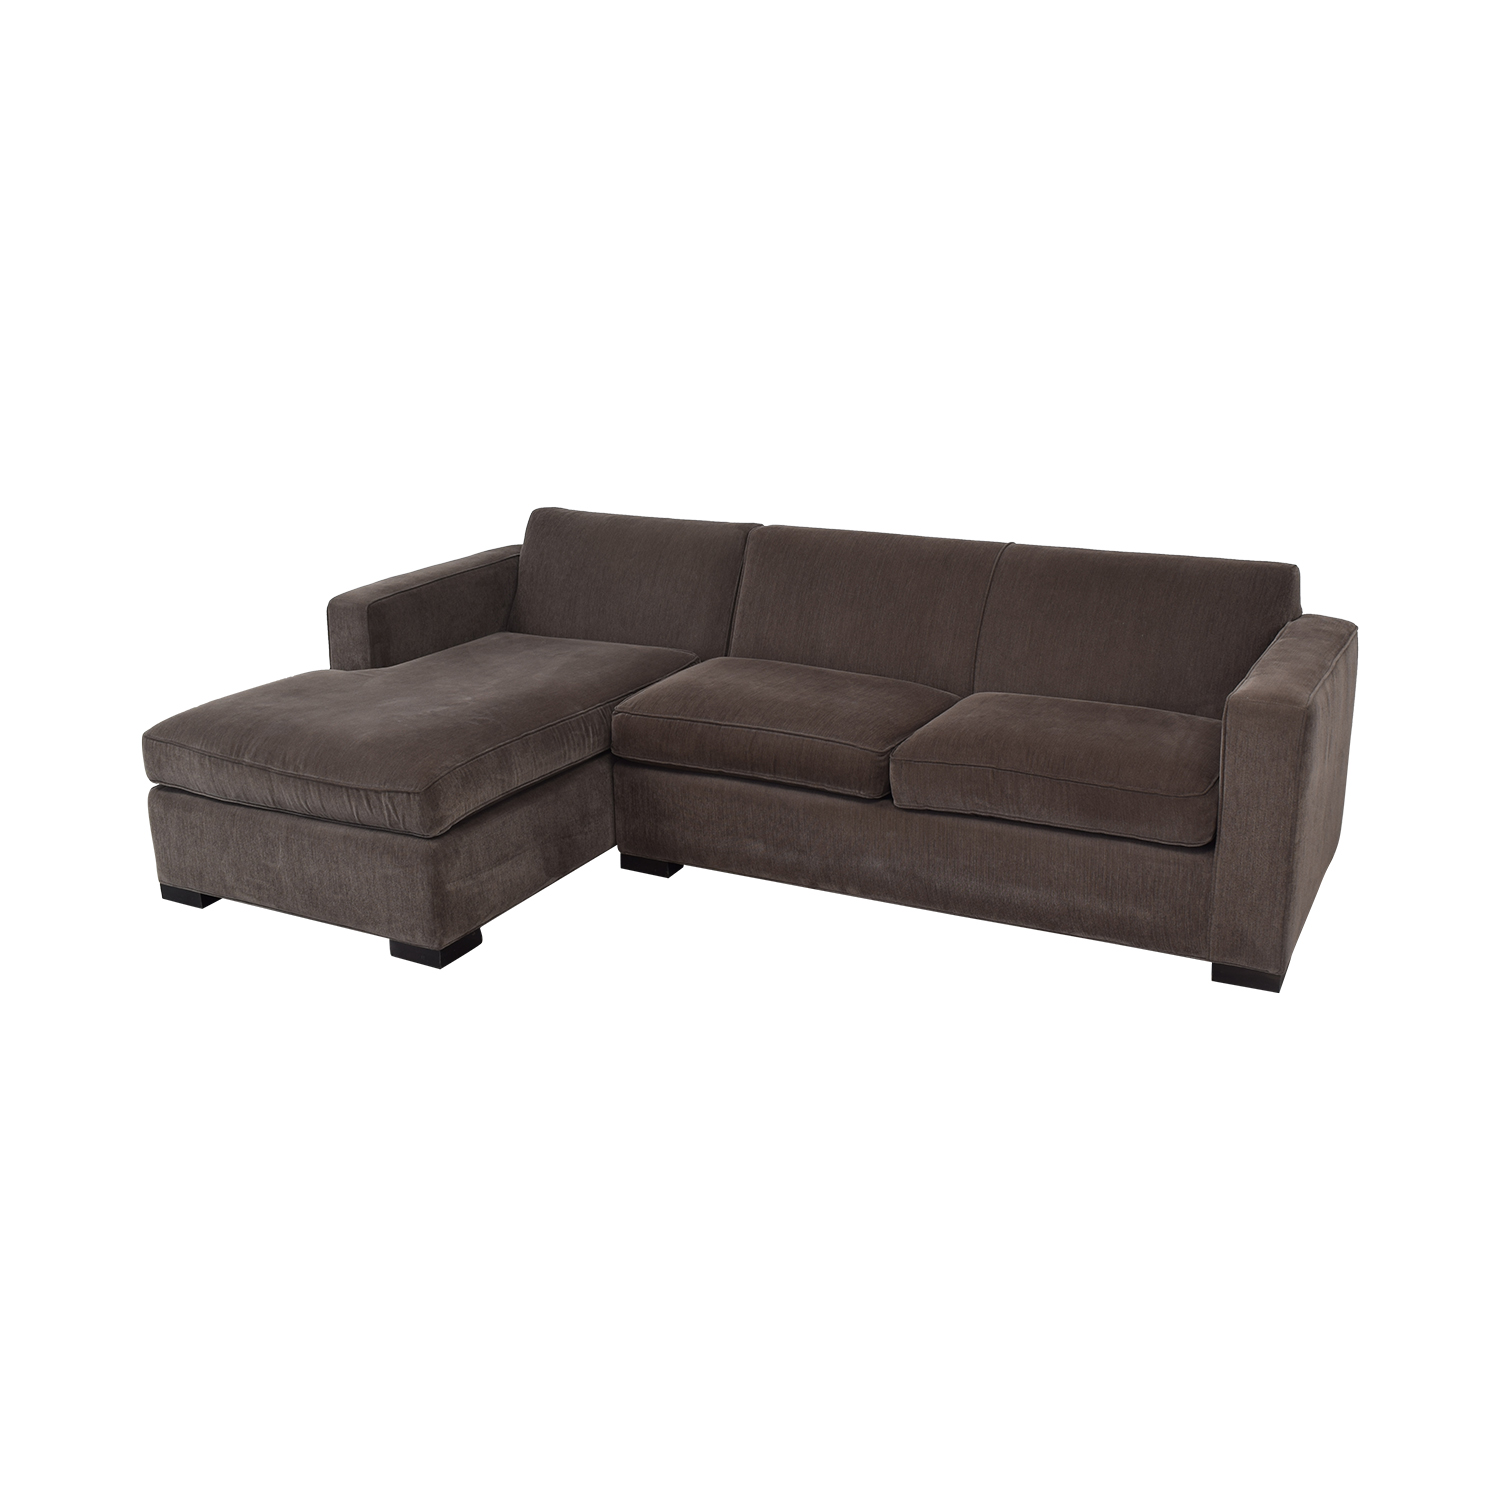 Fabulous 58 Off Room Board Room Board Ian Sectional Sofa With Chaise Sofas Spiritservingveterans Wood Chair Design Ideas Spiritservingveteransorg